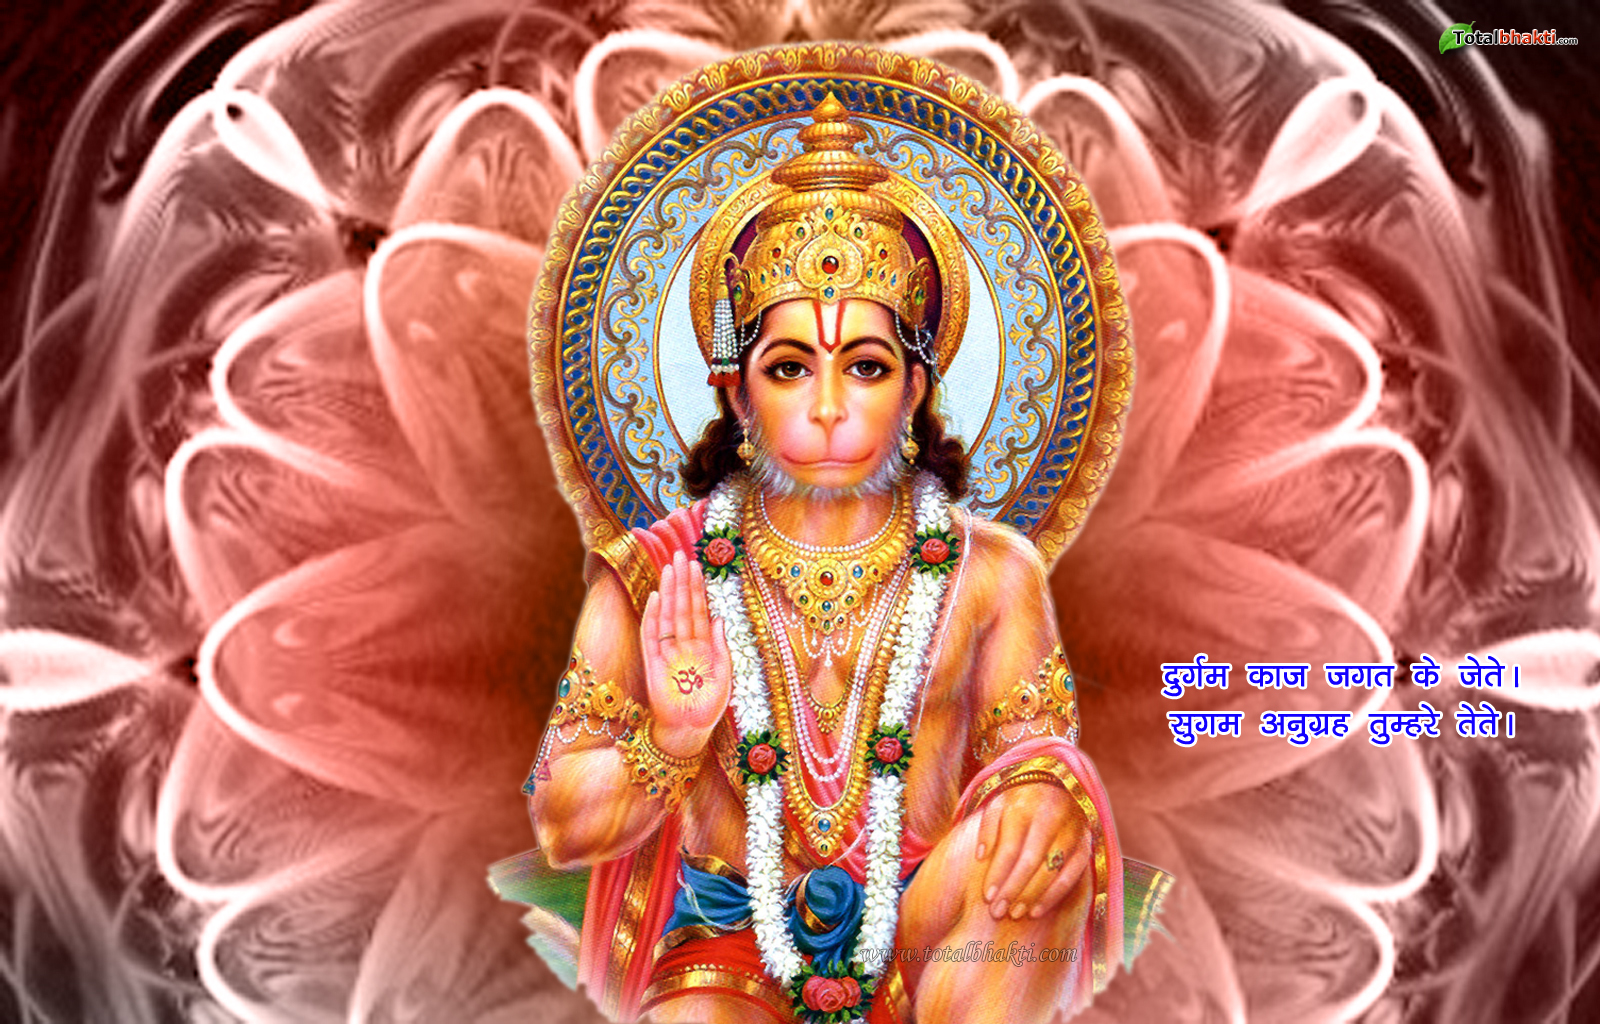 http://3.bp.blogspot.com/-5qMScrj0xXw/UEImlk_FHDI/AAAAAAAATVE/ZGAG5TrO7qg/s1600/Hanuman-Jayanti-powerful+wallpapers-windows-mac+(1).jpg